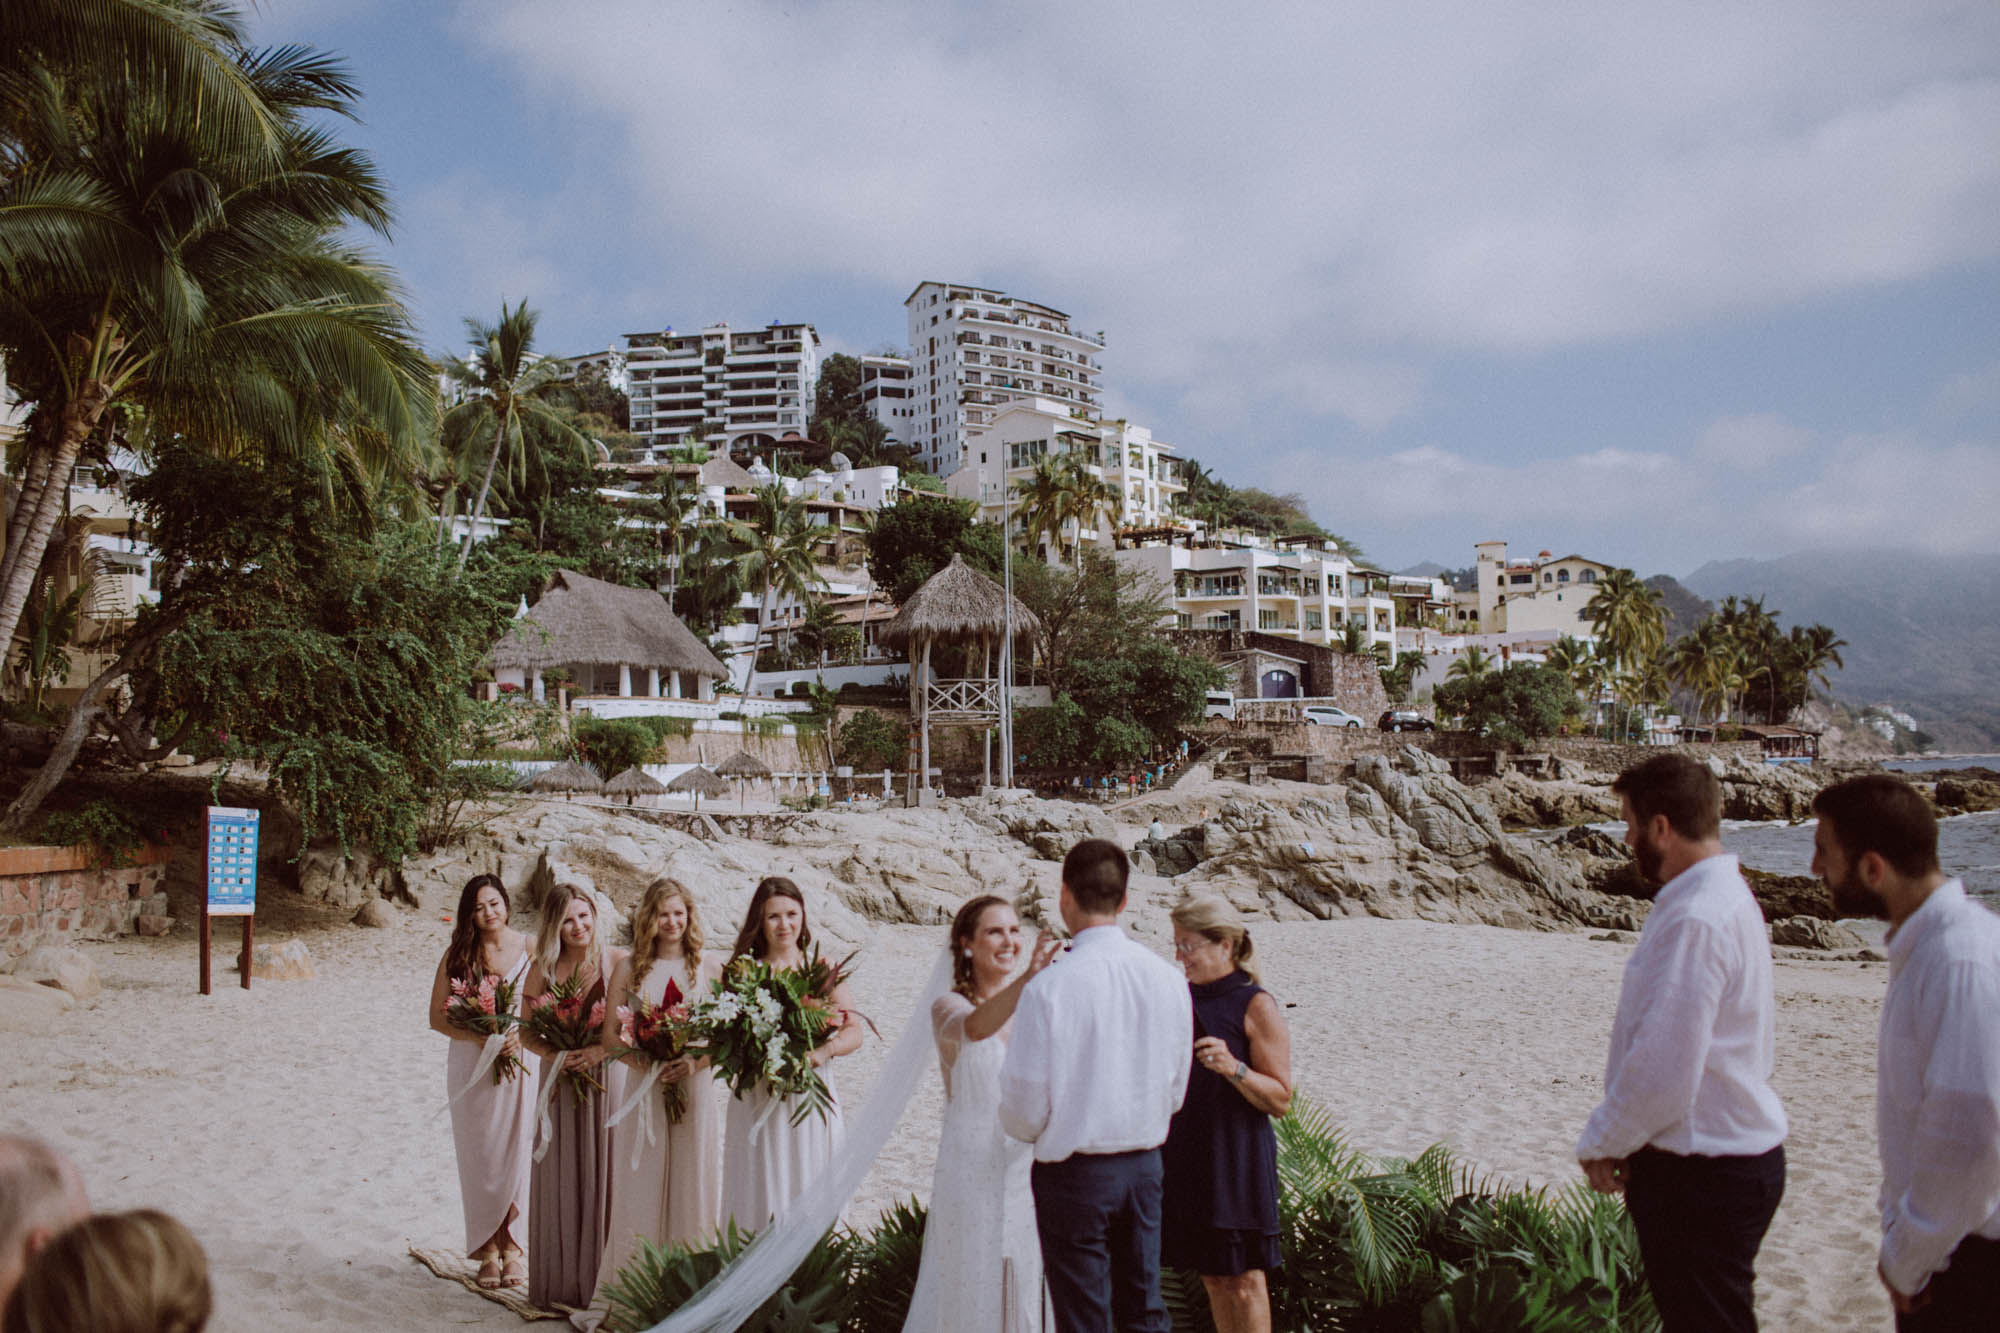 c_m_mexicowedding_destinationphotographer-44.jpg